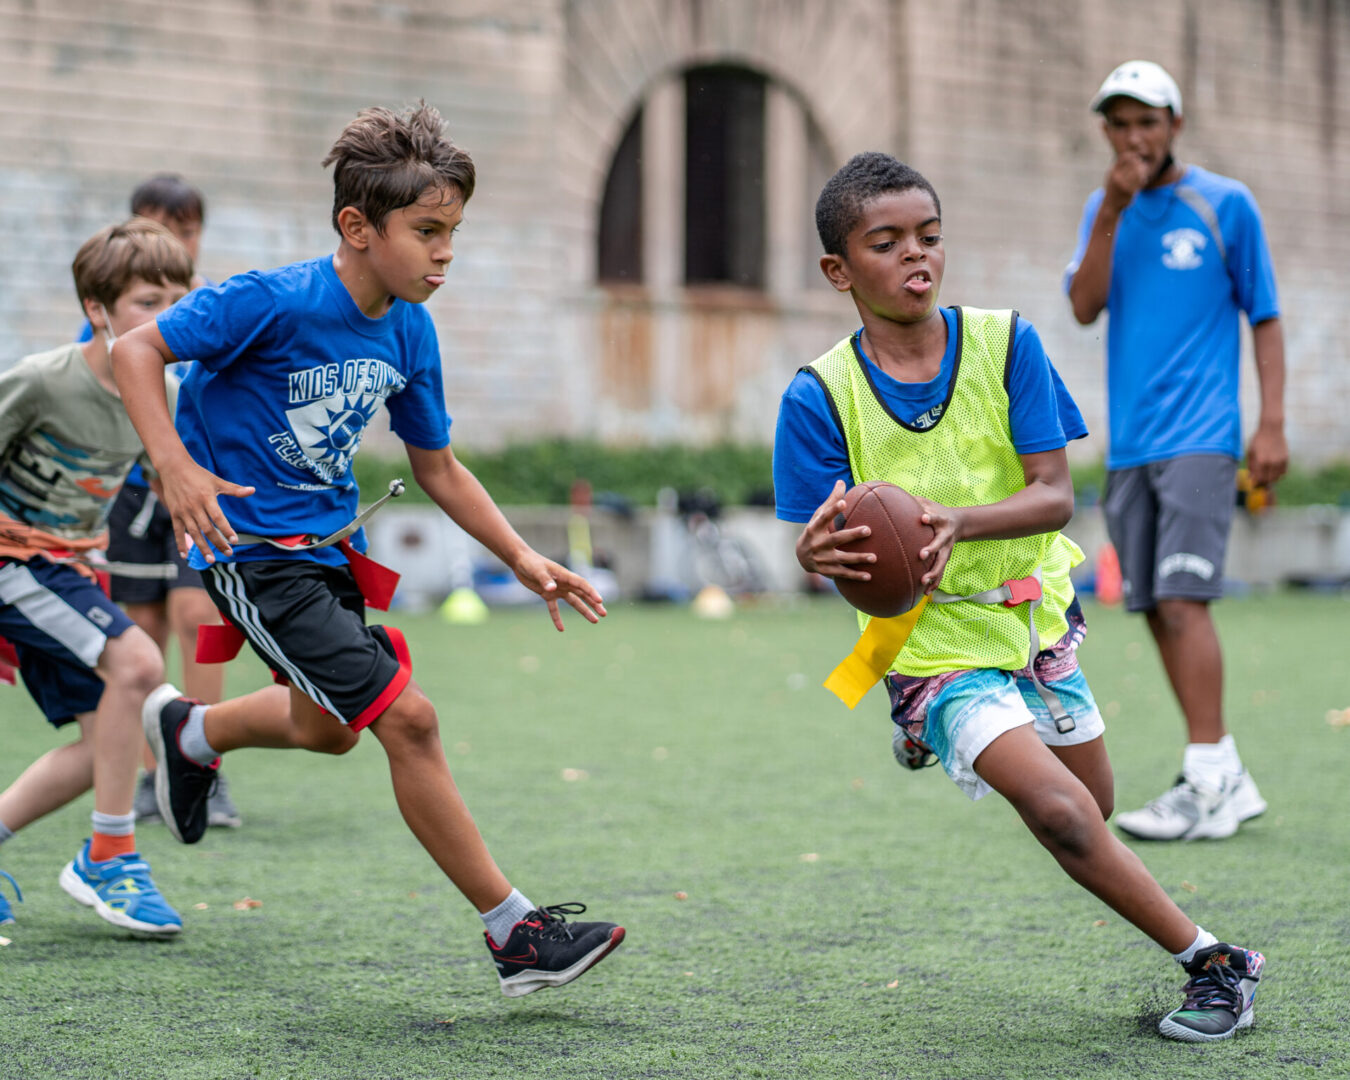 Kids of Summer Sports NYC